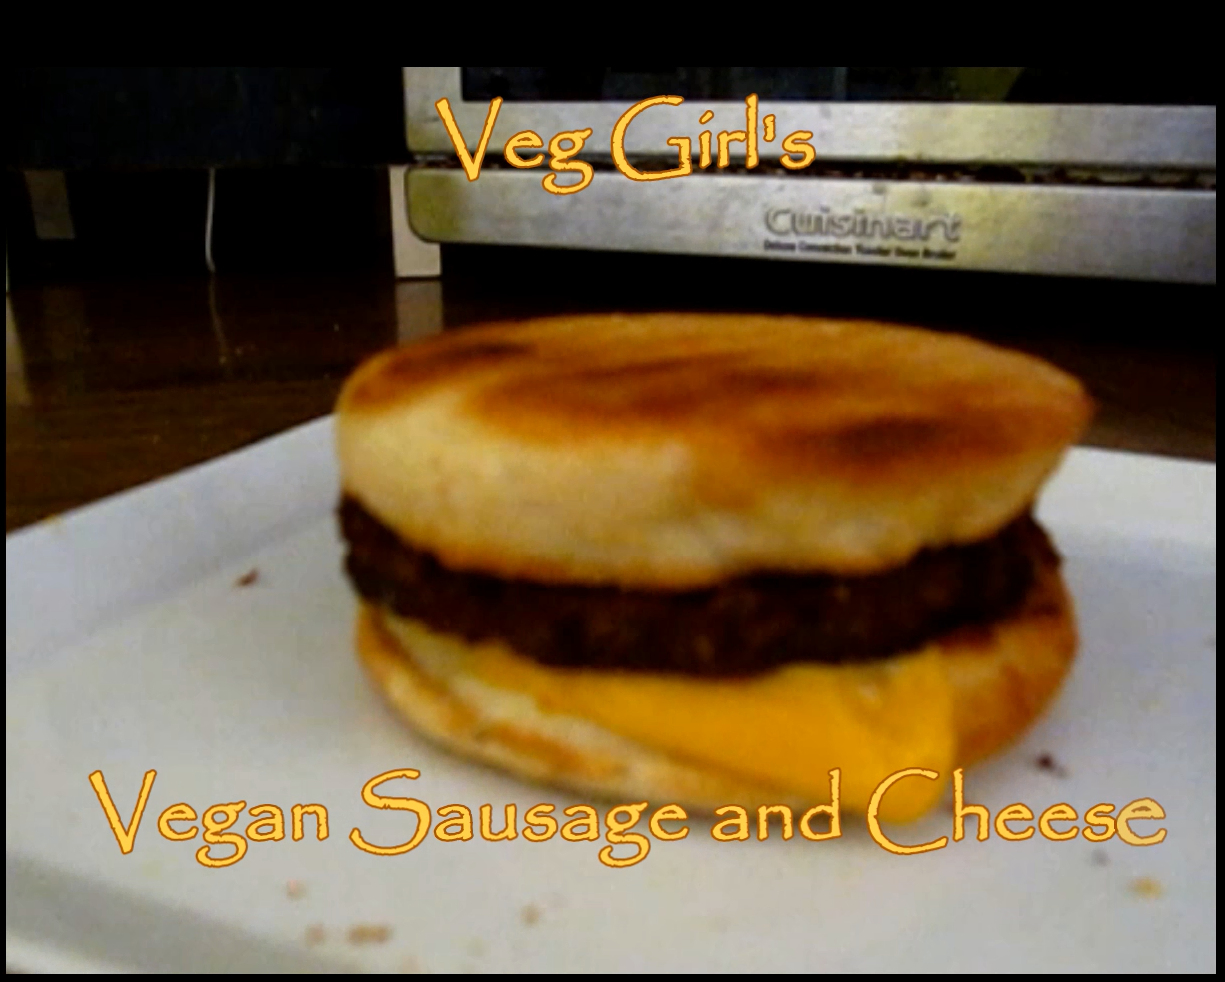 VegGirl's Vegan Sausage and Cheese Breakfast Sandwich